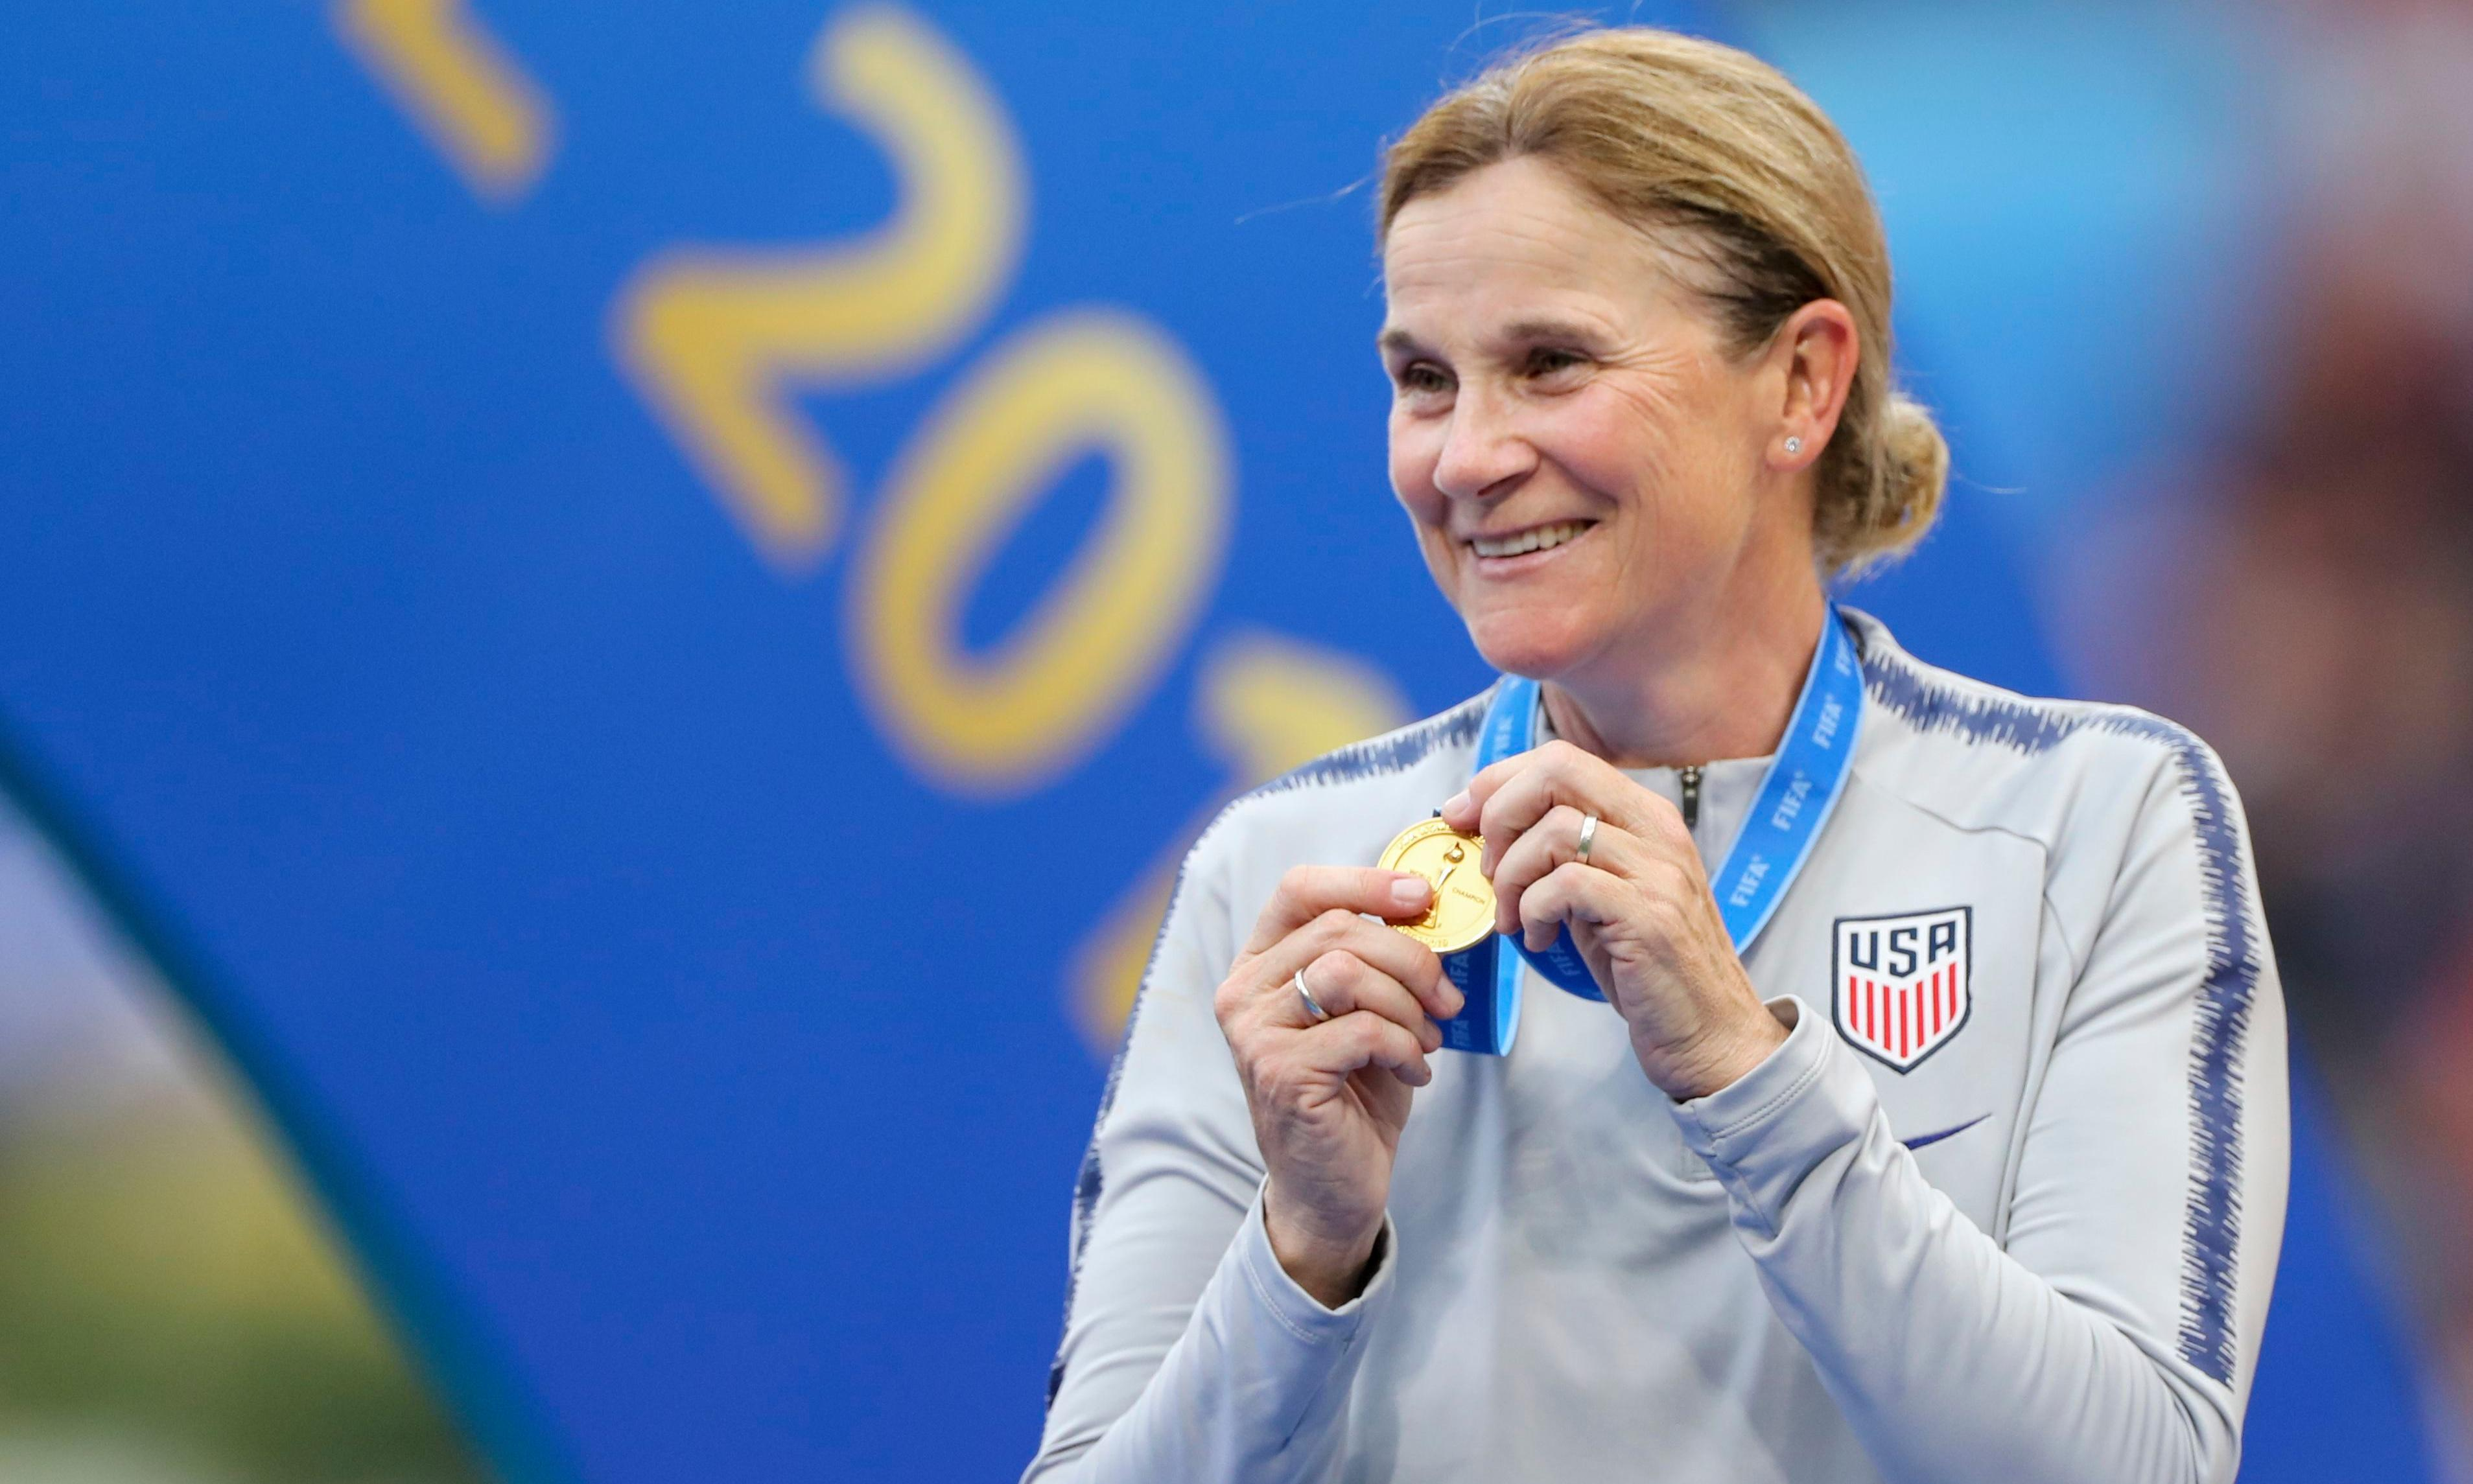 The USMNT coach almost earned World Cup winner Jill Ellis's annual salary in a month. Why?